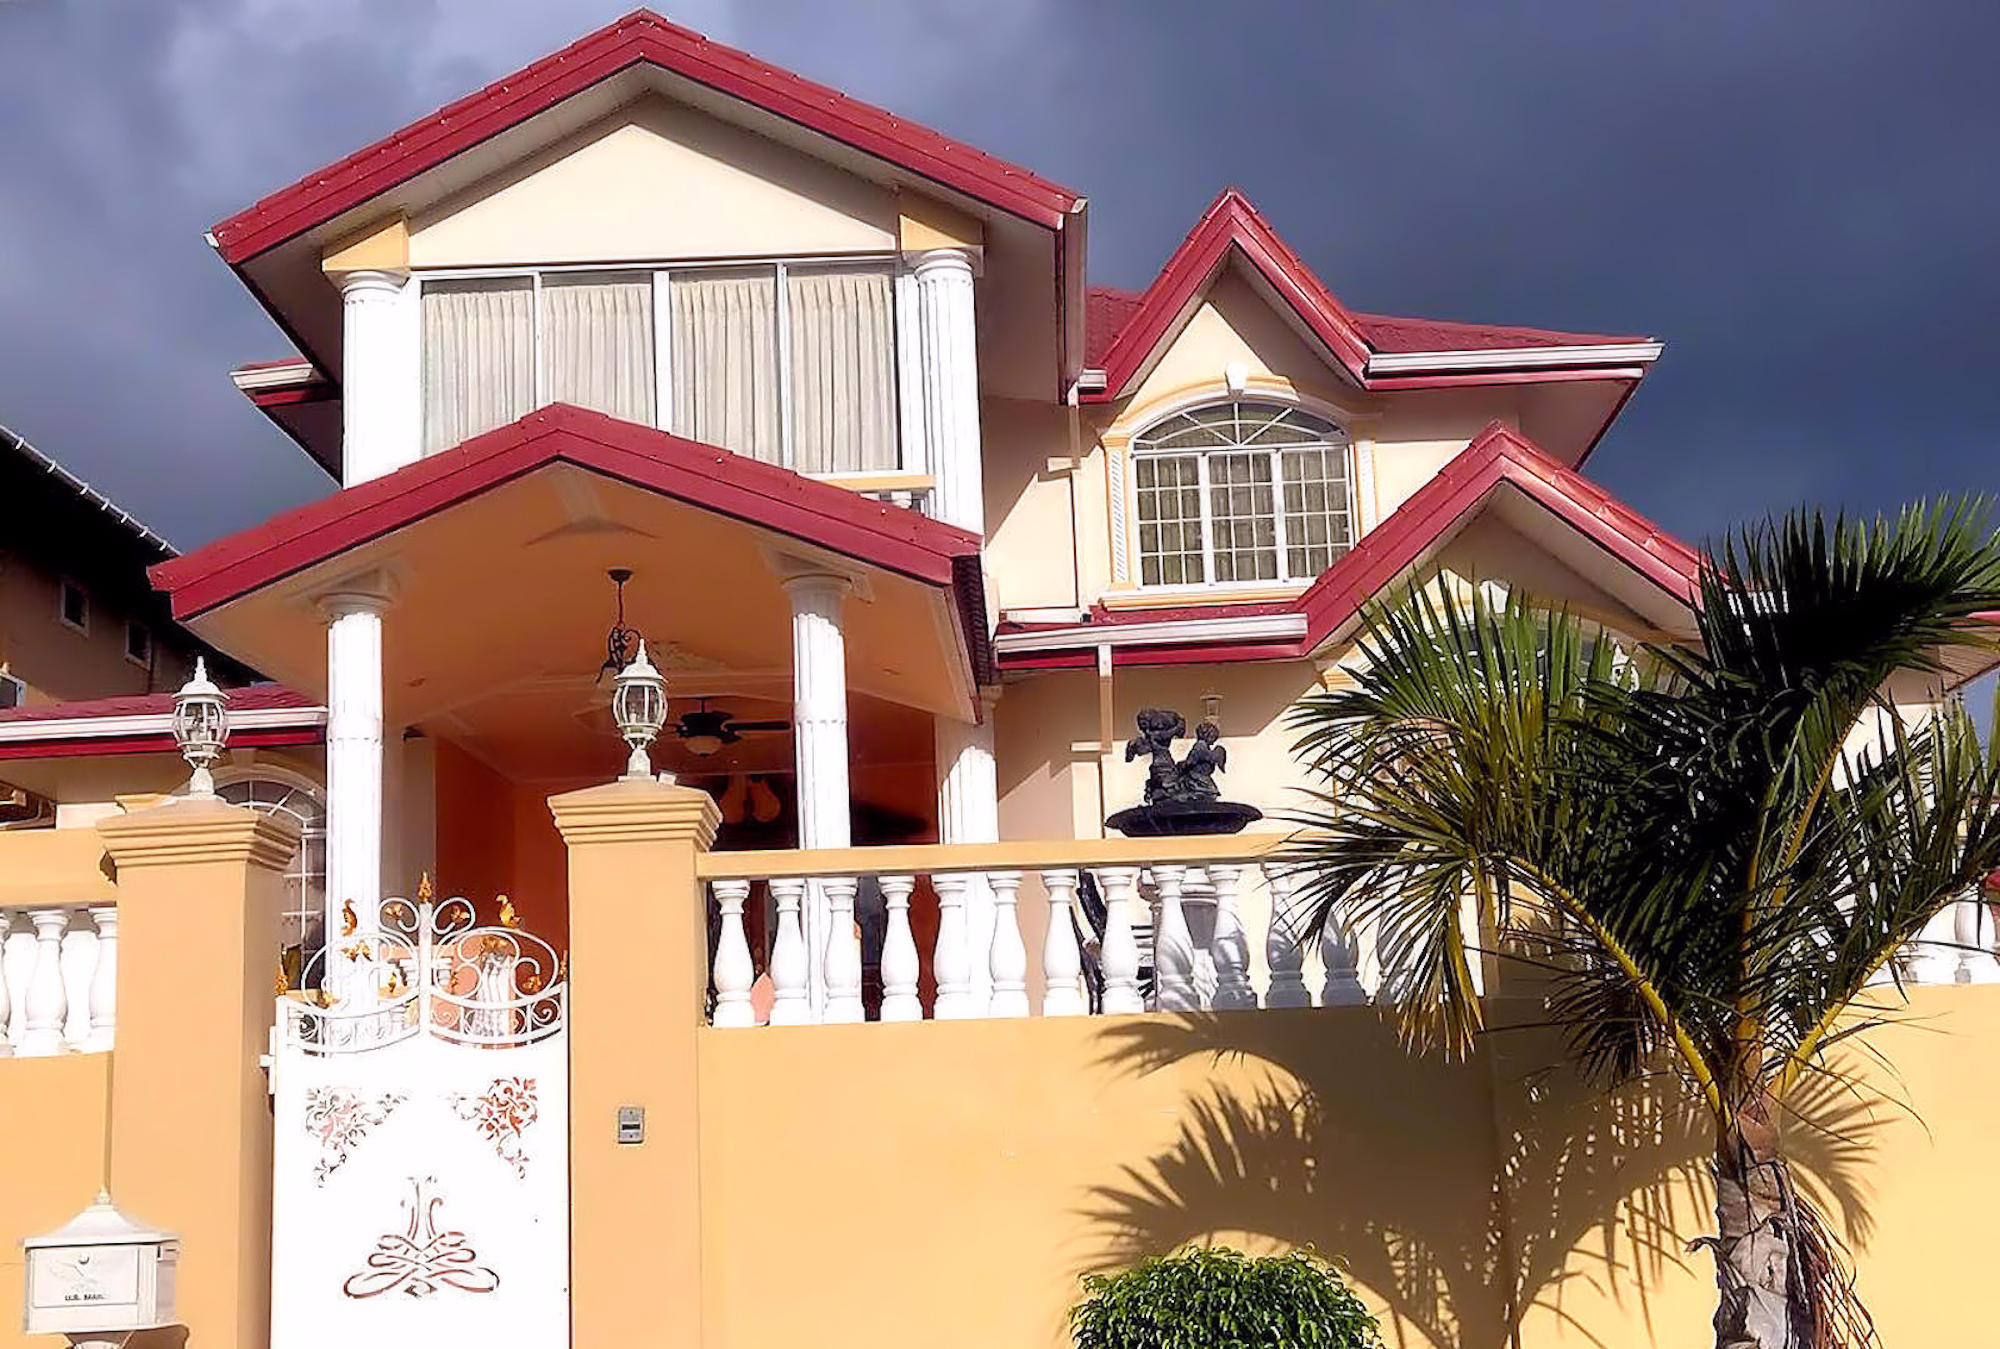 Beautiful Home in Otaheite, South Oropouche